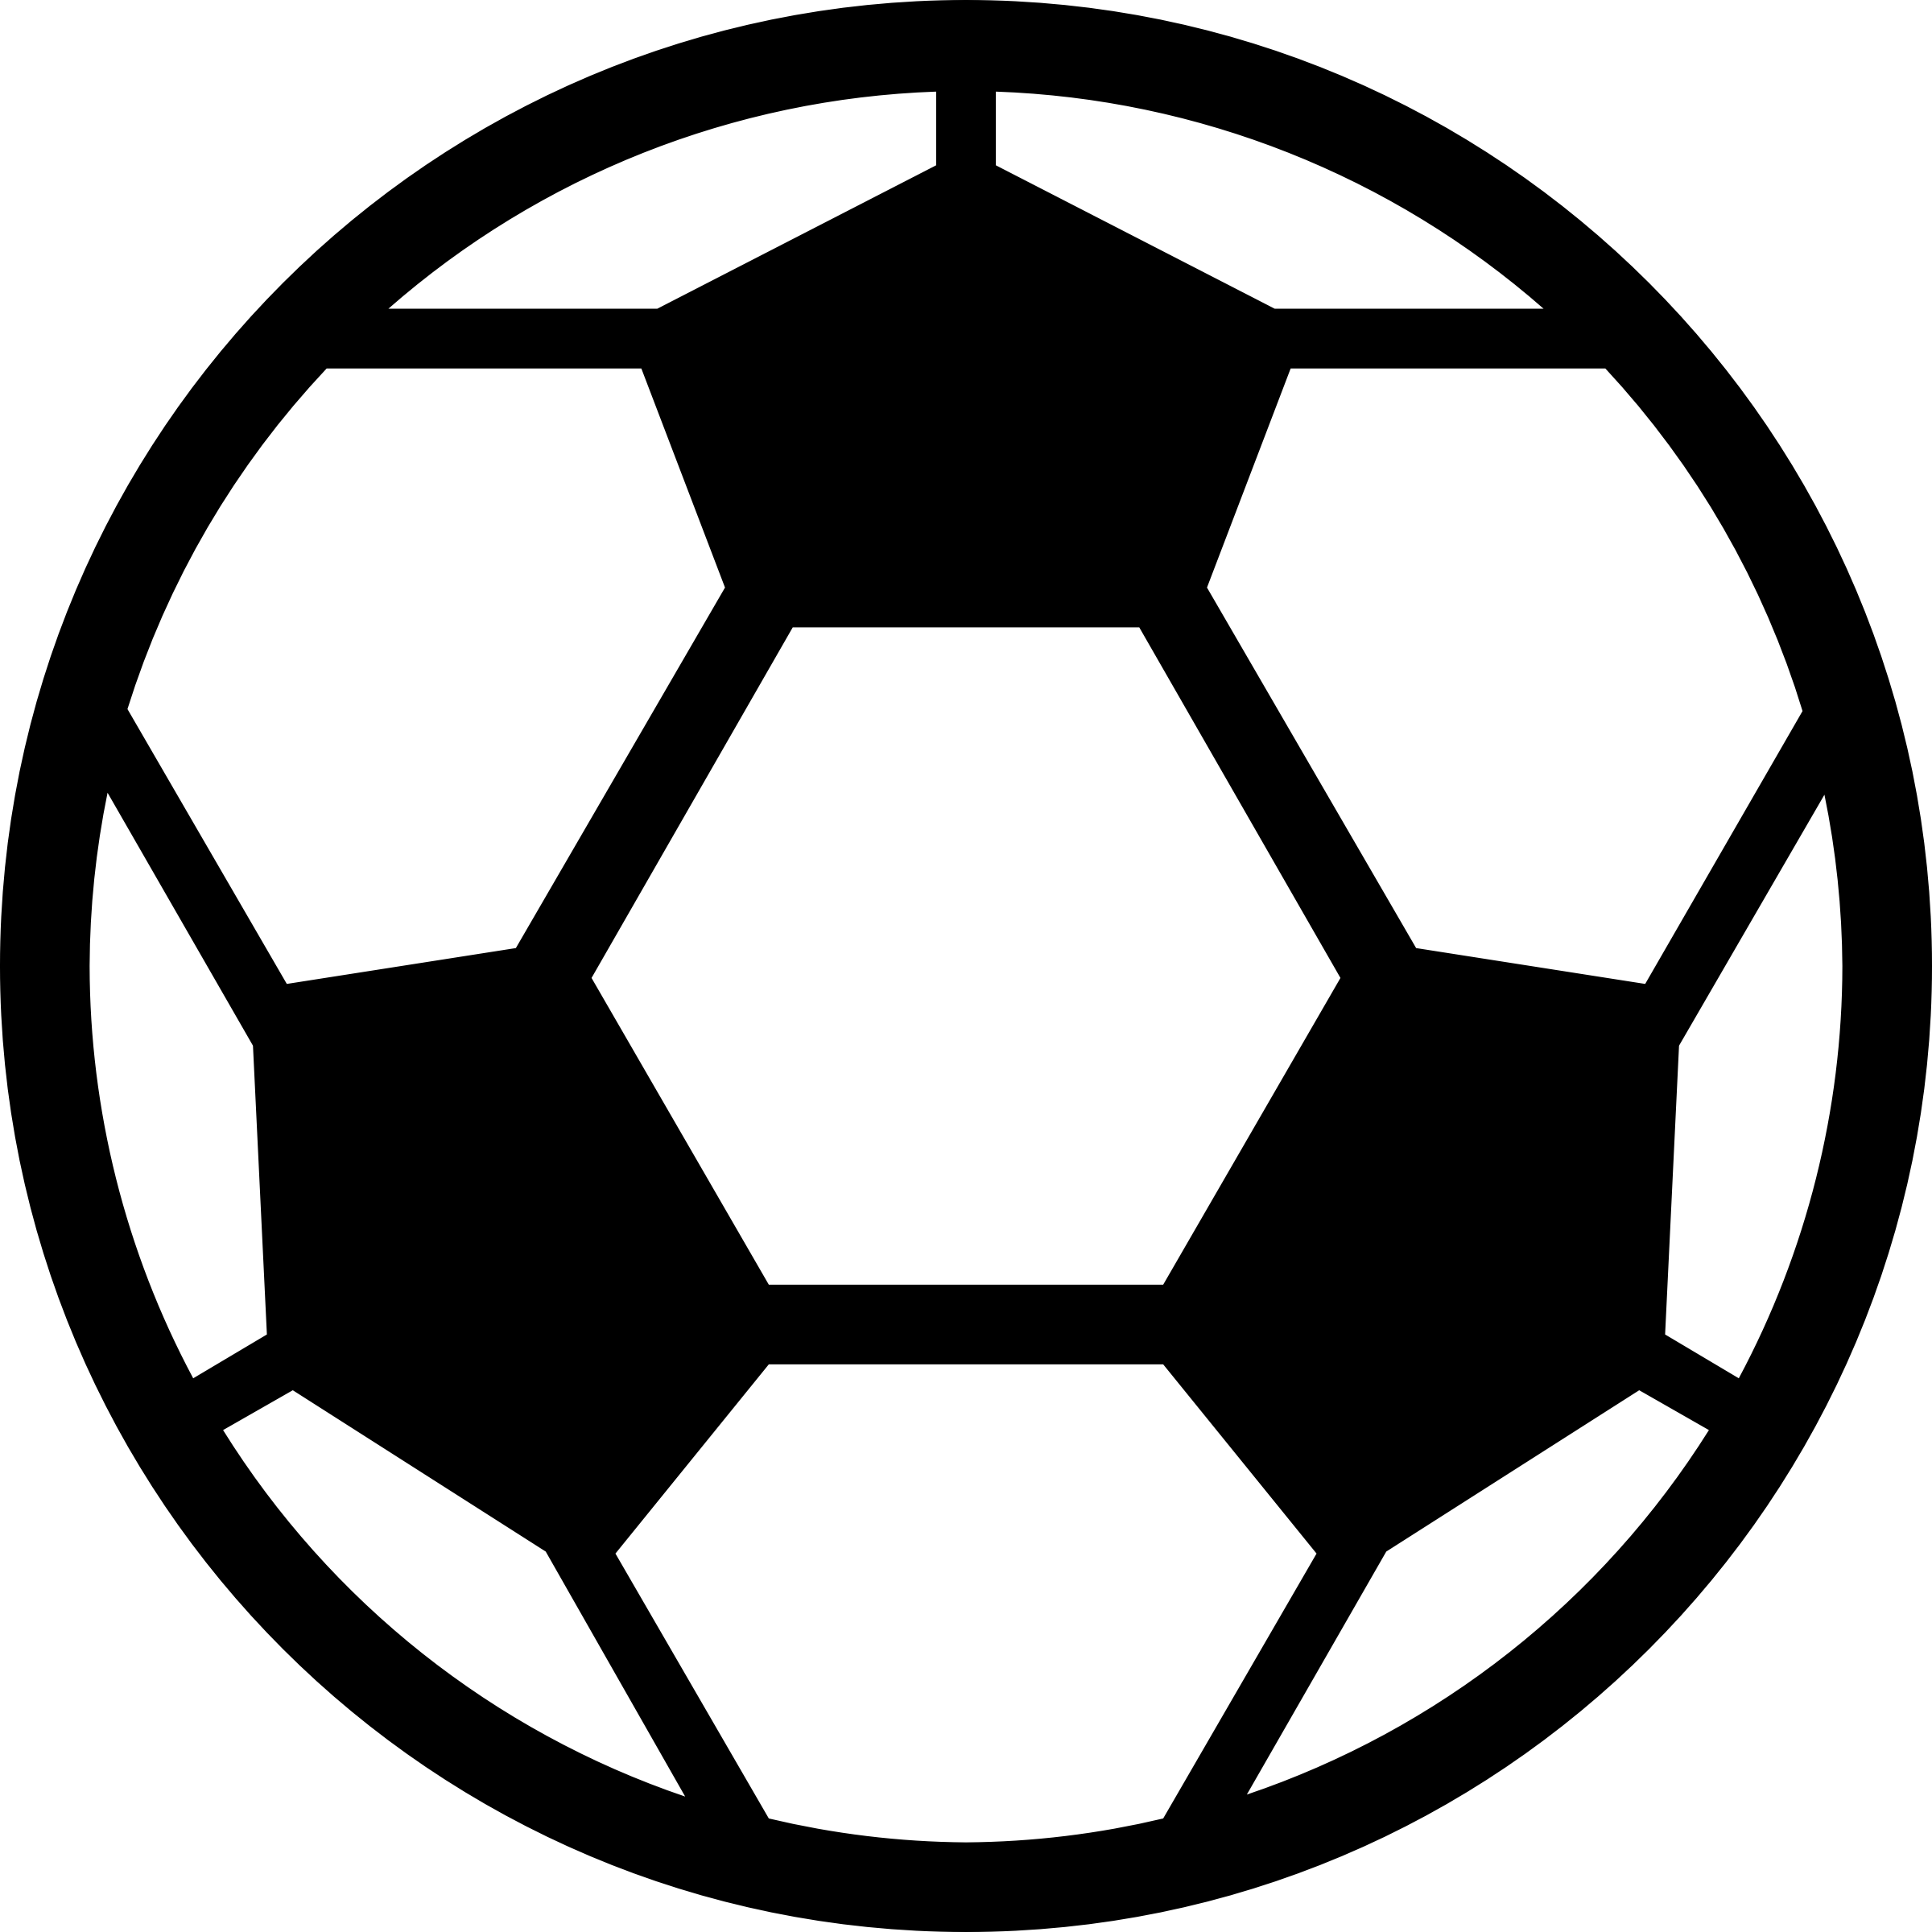 Clipart of soccer ball picture royalty free Soccer Ball Clipart & Soccer Ball Clip Art Images - ClipartALL.com picture royalty free